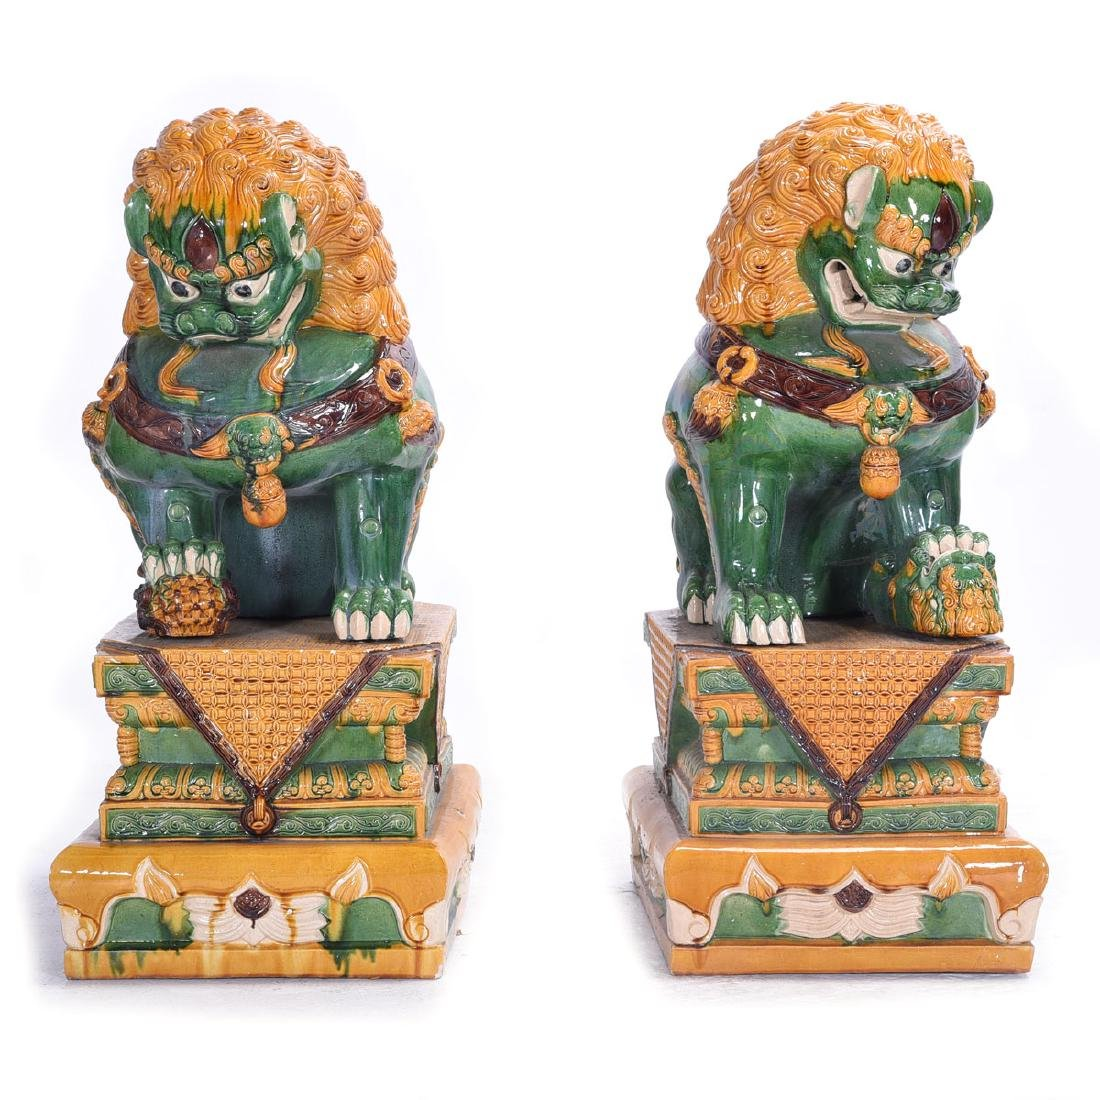 Pair of Massive Glazed Ceramic Guardian Lions